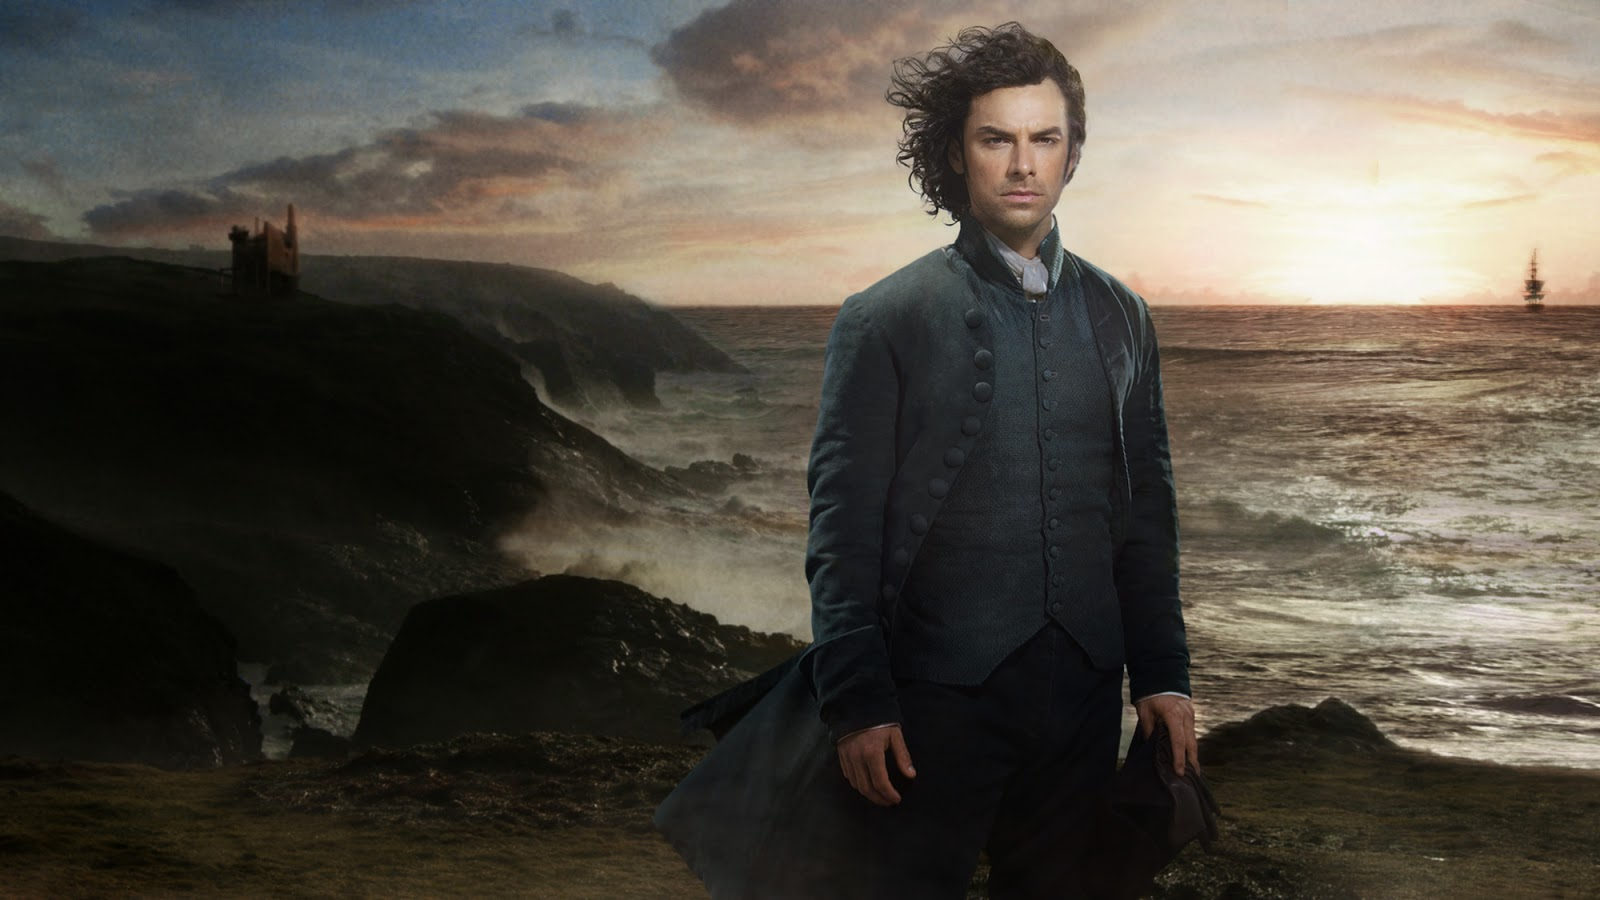 Aidan Turner as Ross Poldark in the BBC series